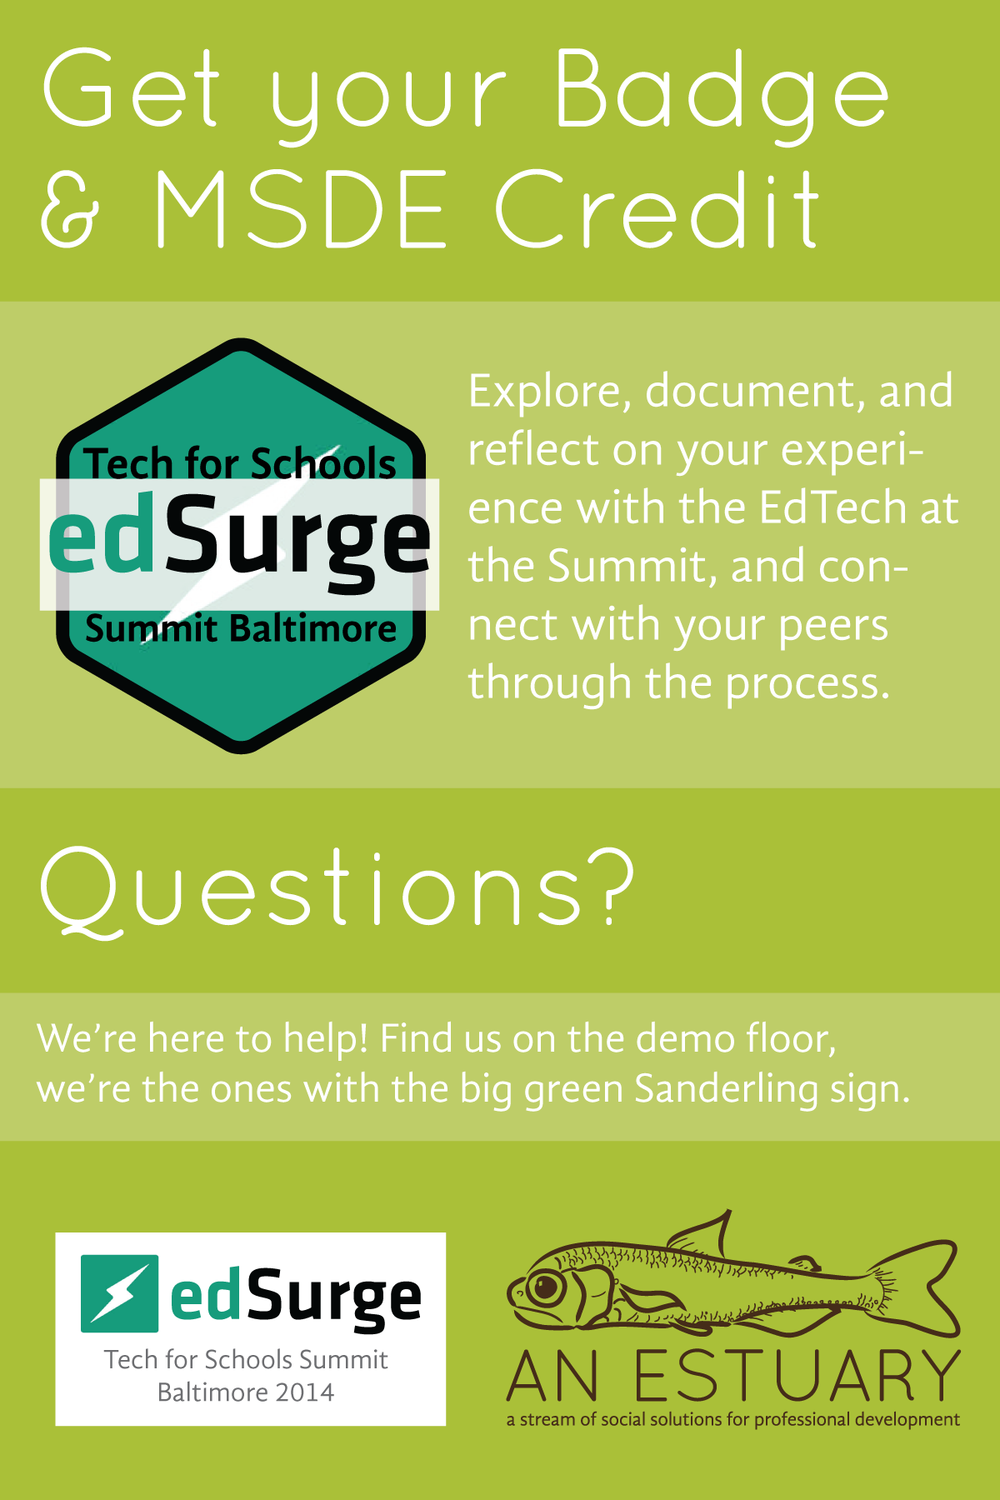 edsurge_how_to-02.png